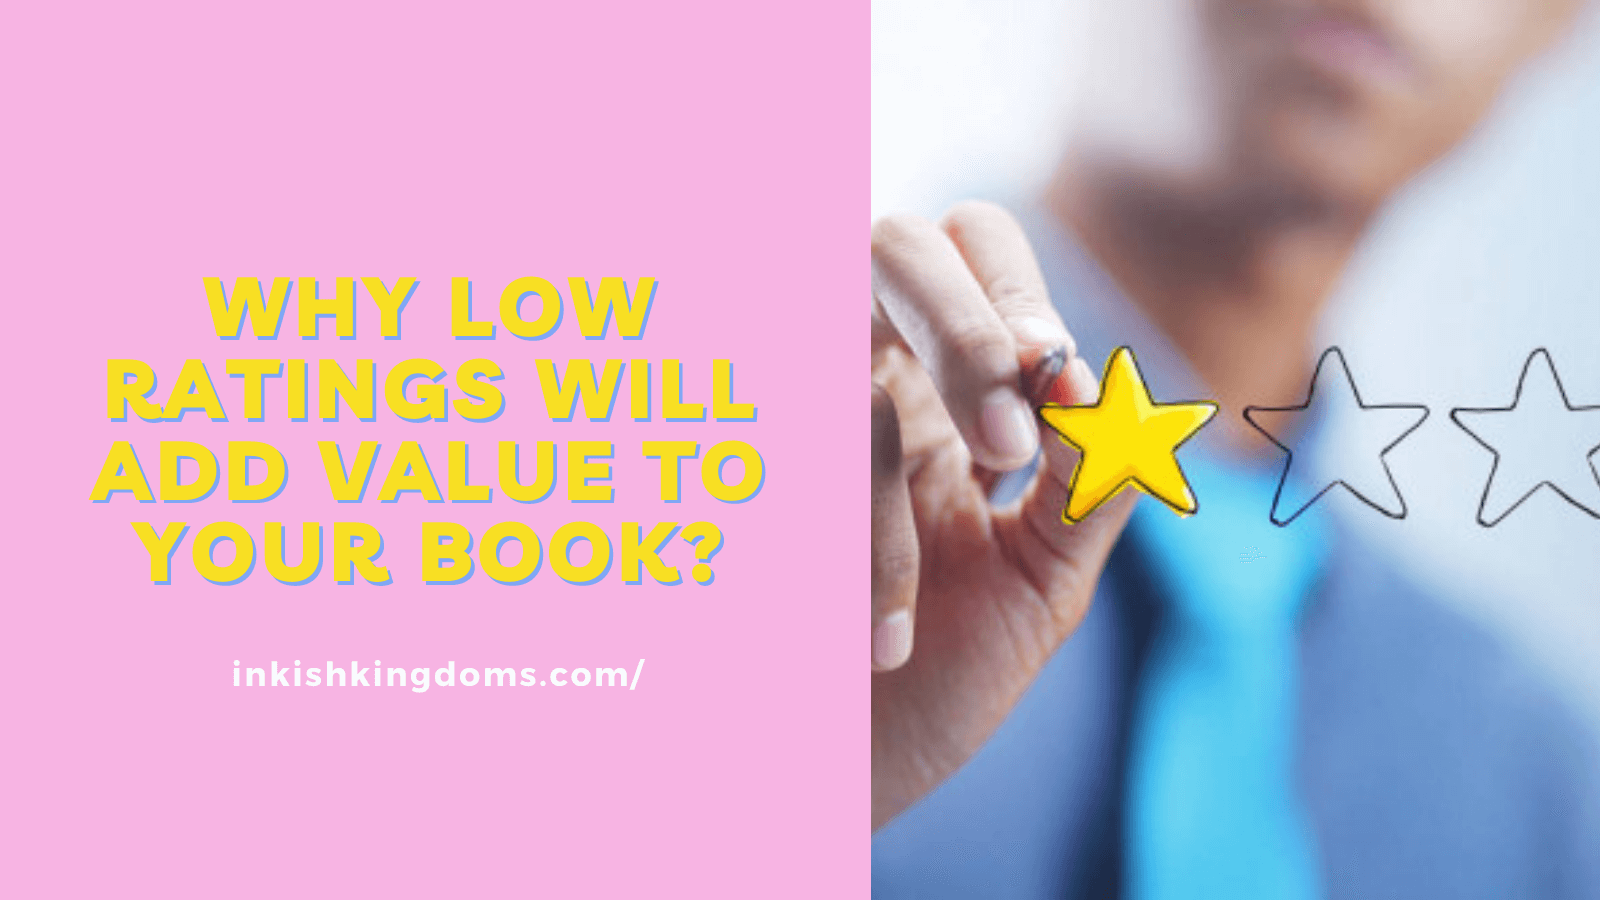 Why low ratings will add value to your book?